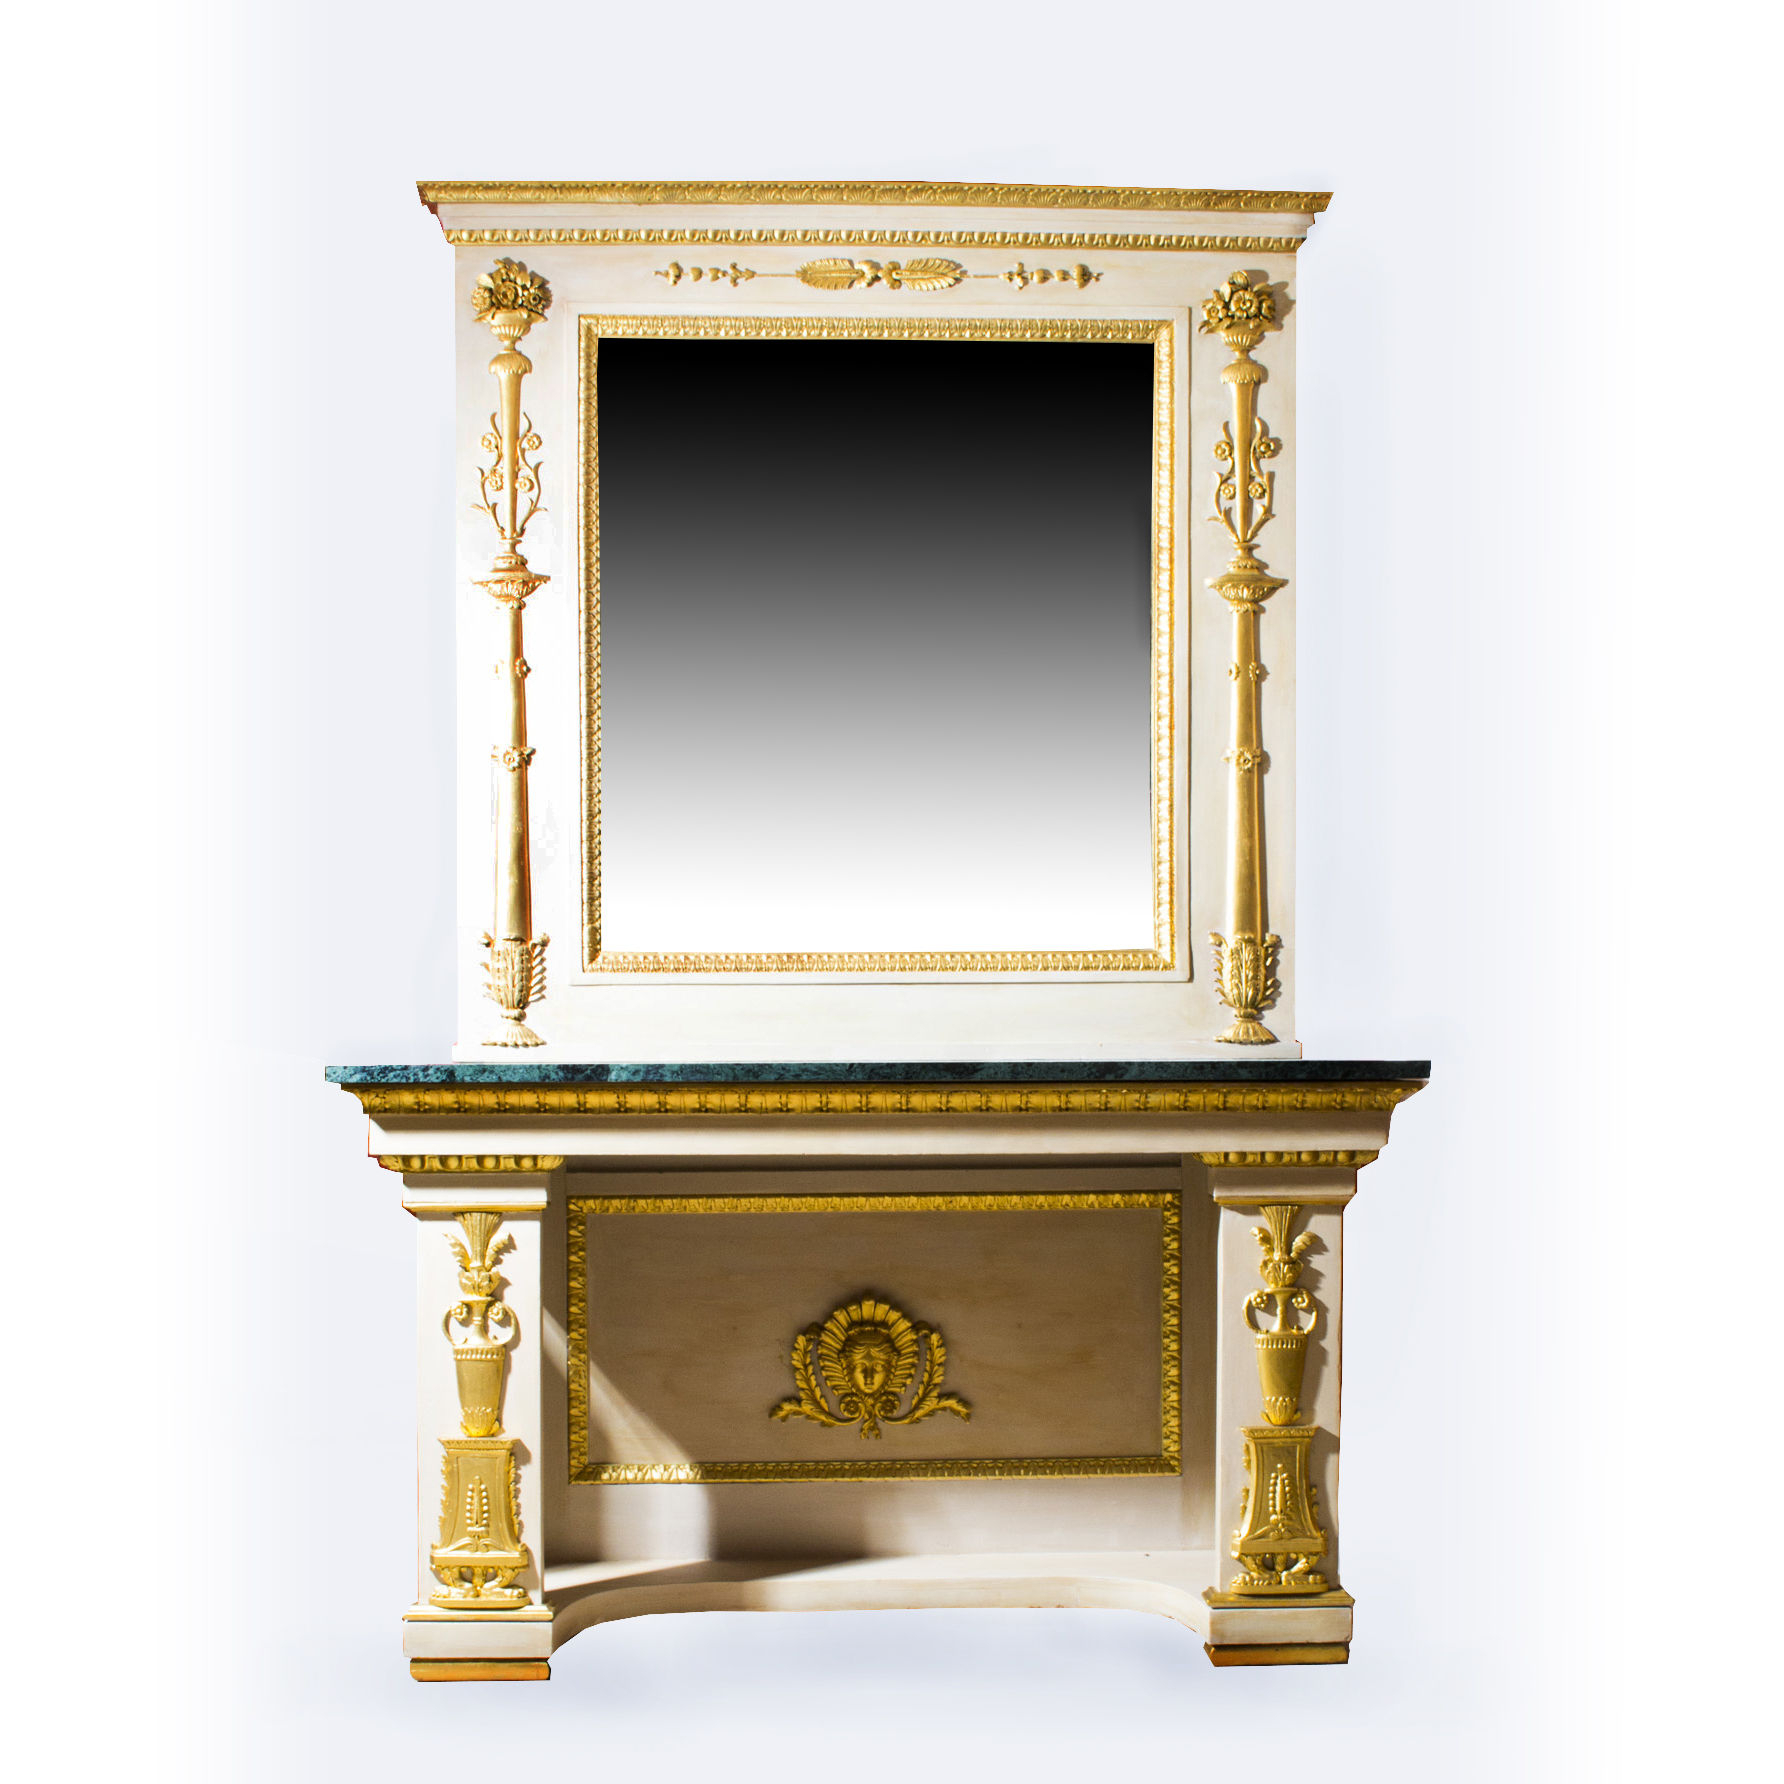 Antique Roman Console Table With Mirror & Marble Top 248 X 168 Cm (c Throughout Roman Metal Top Console Tables (View 11 of 20)